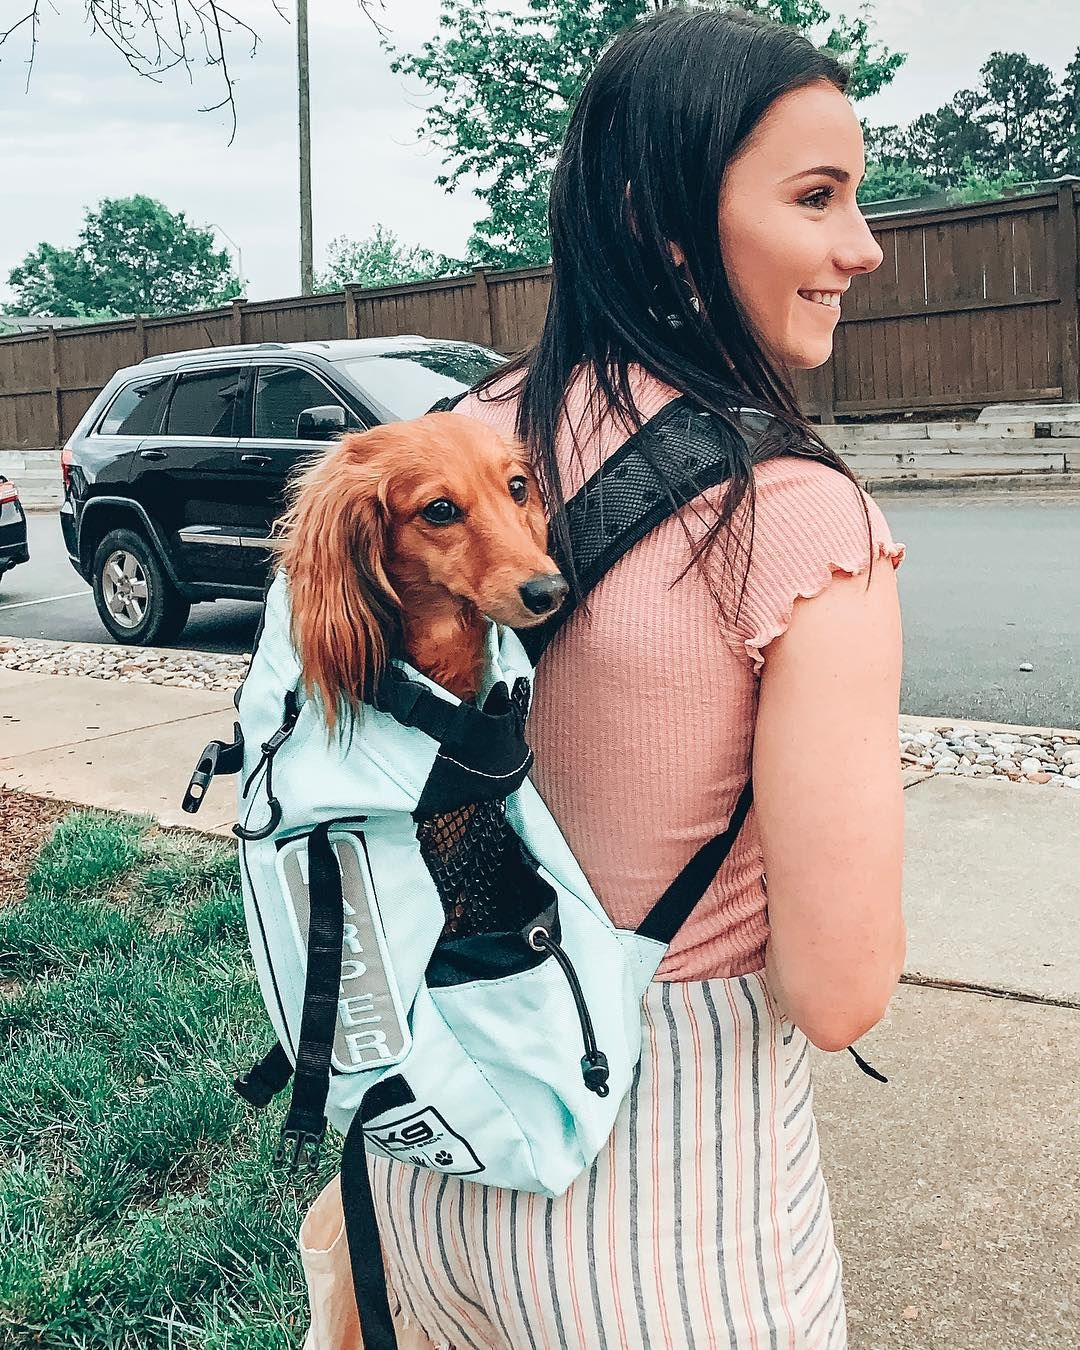 K9 Sport Sack Air Forward Facing Dog Carrier Backpack Free Shipping Chewy Dog Carrier Bag Dog Backpack Carrier Dog Carrier